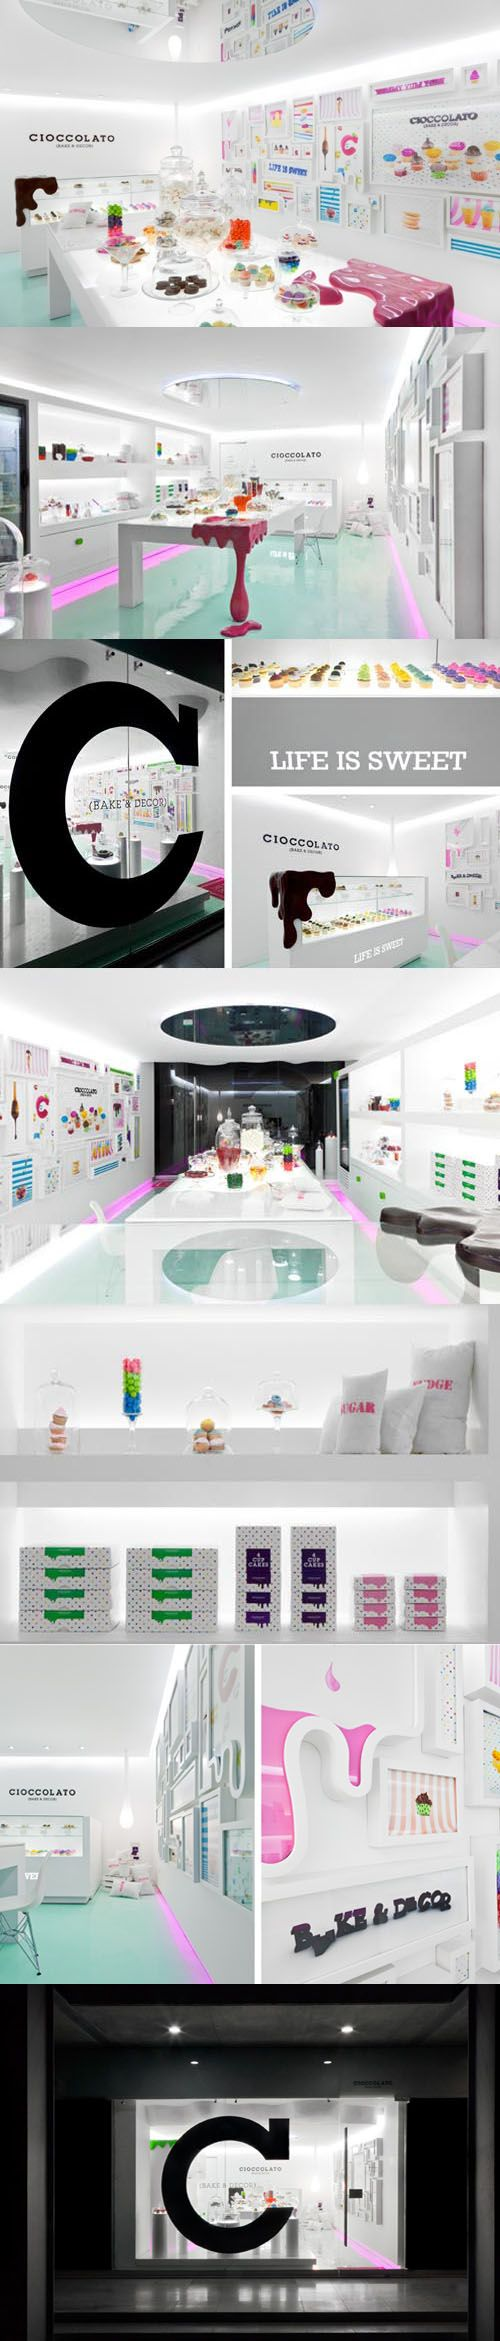 Best 25+ Chocolate store design ideas on Pinterest | Chocolate ...